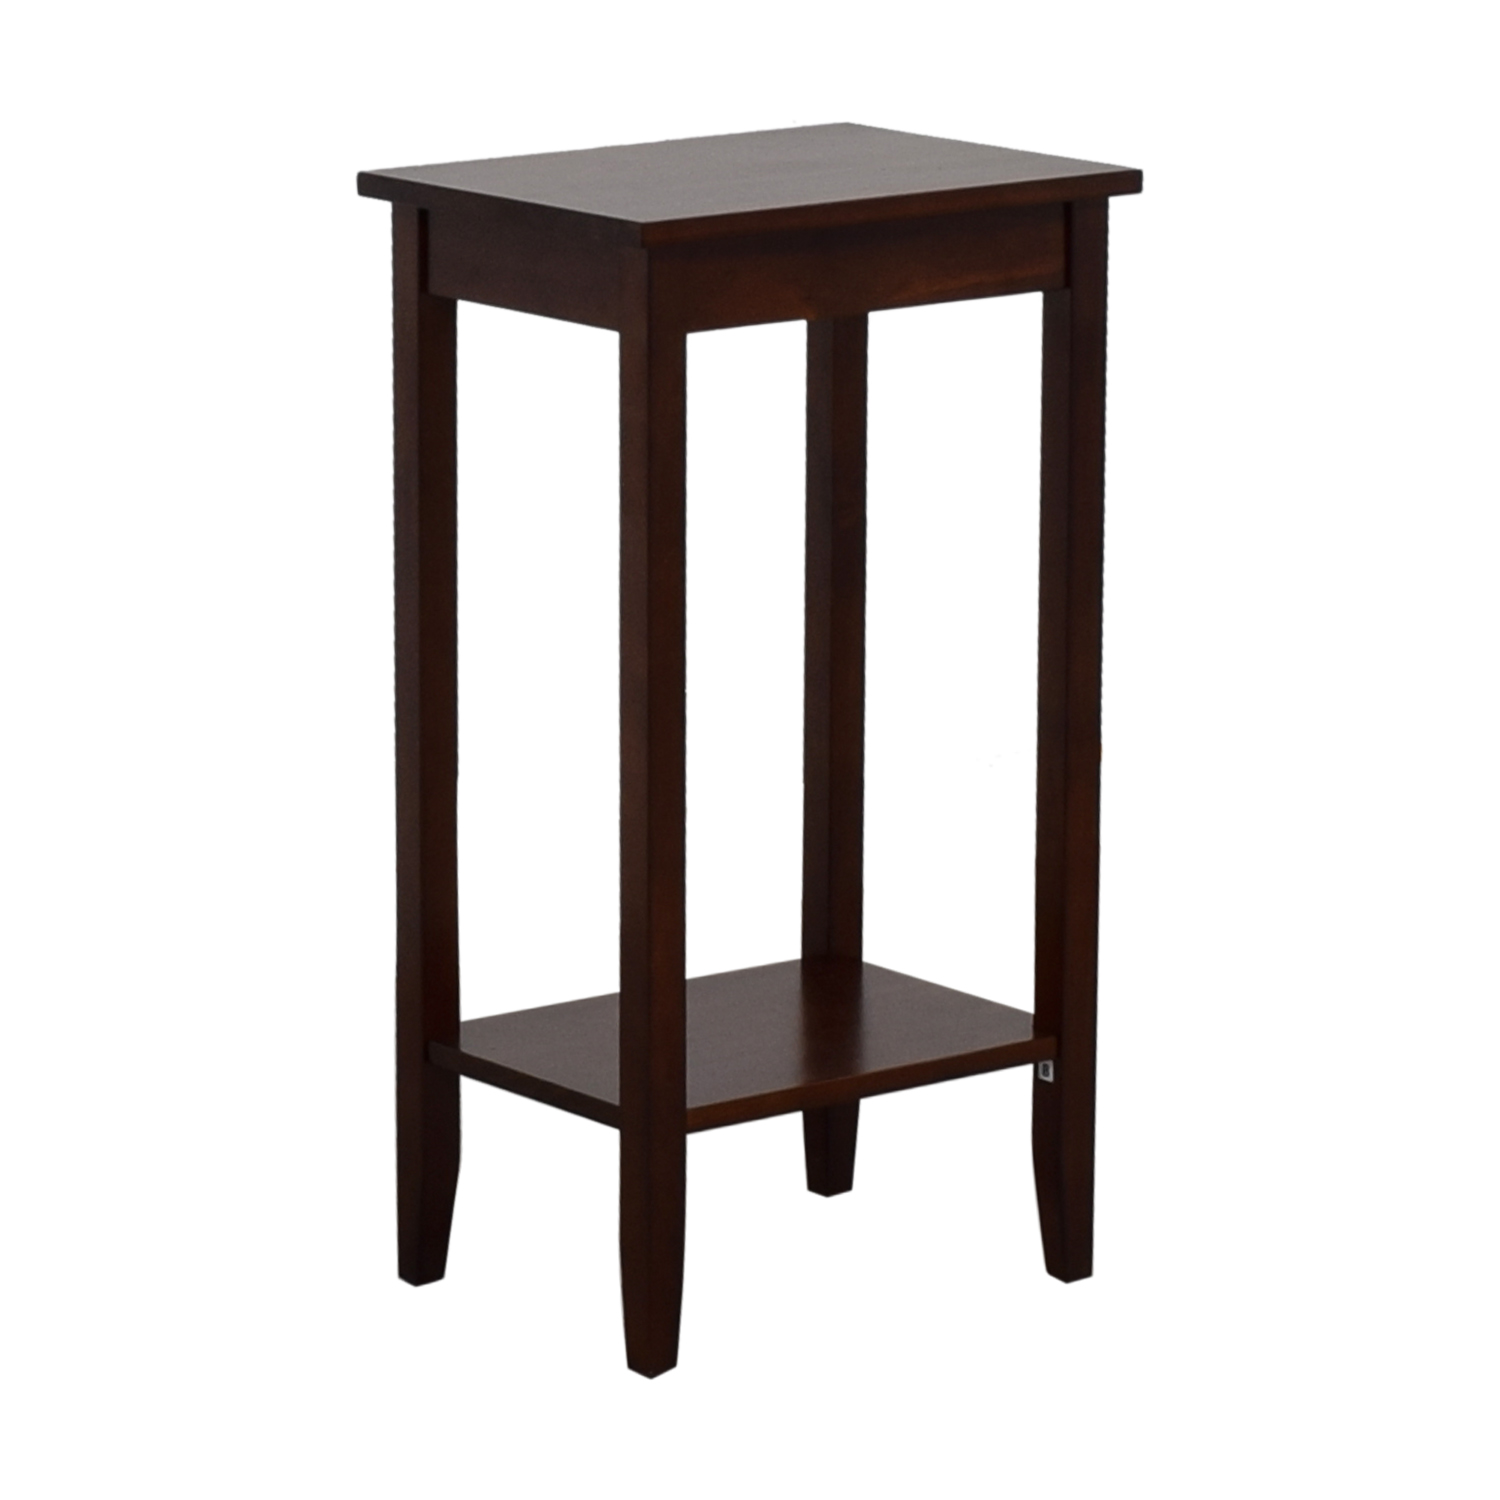 off dorel home products rosewood tall end table second hand accent tables gold glass lamp lime green tools ikea living room sets bulk tablecloths grey coffee dining furniture inch